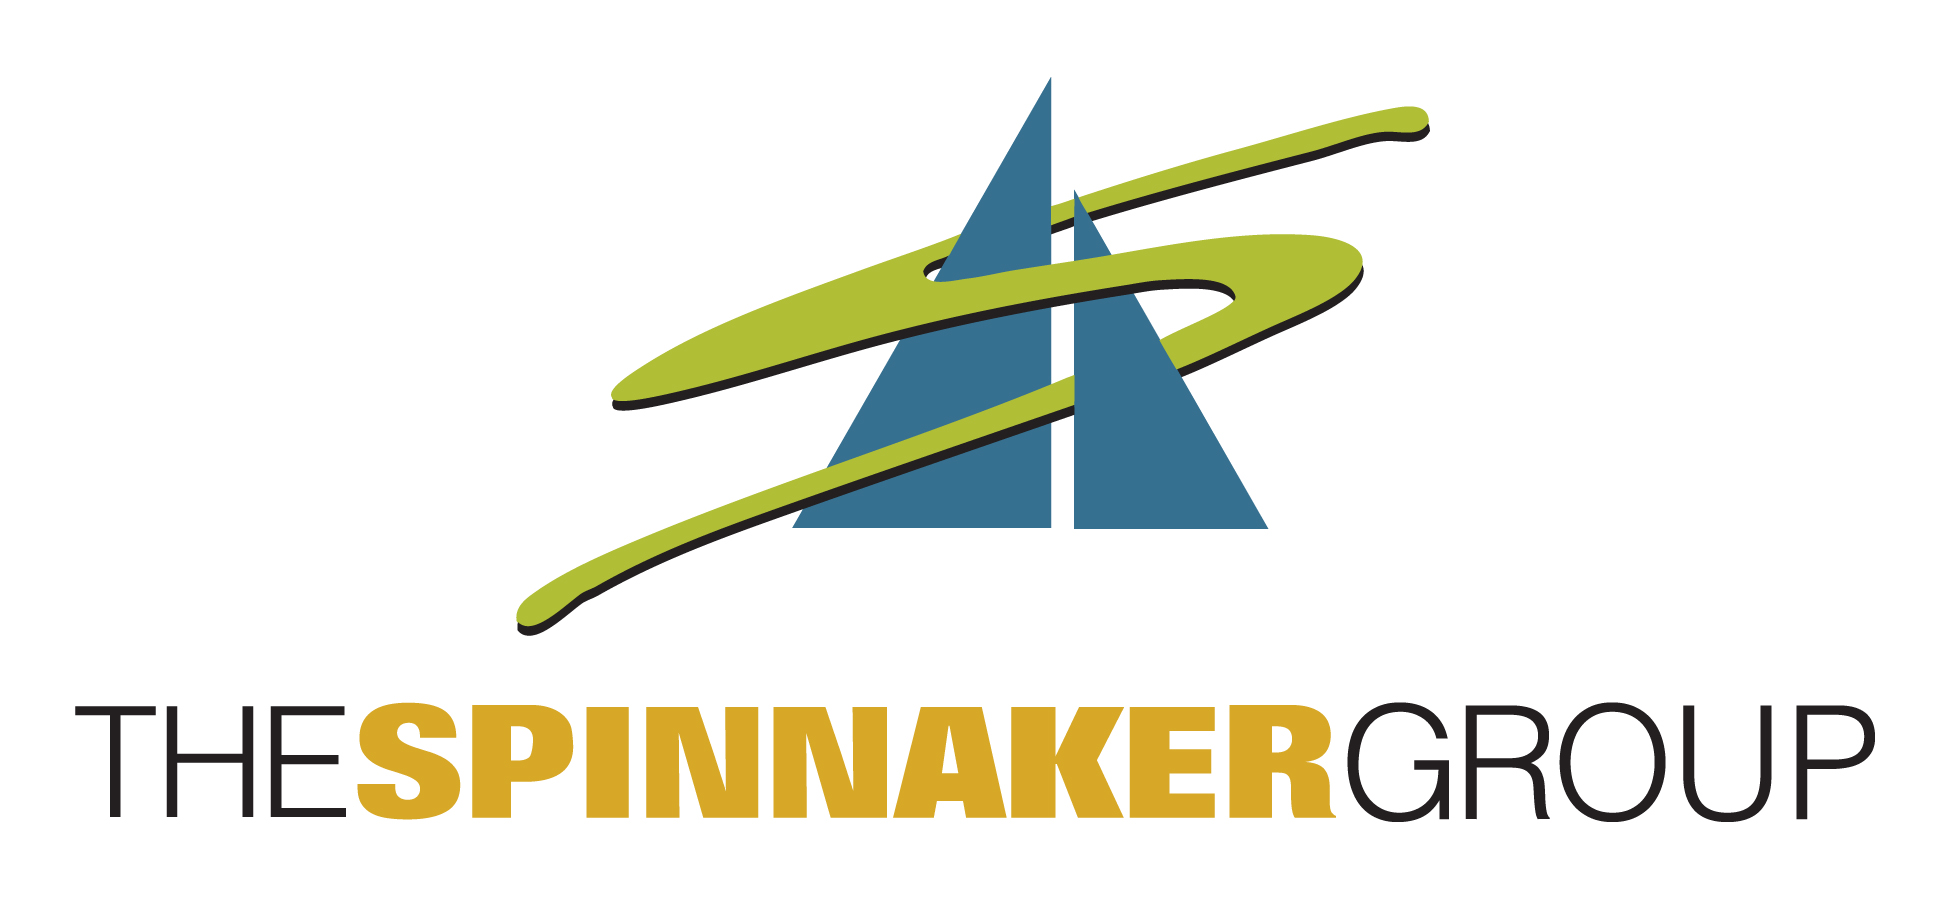 Spinnaker Group Logo 300dpiRGB (1).jpg